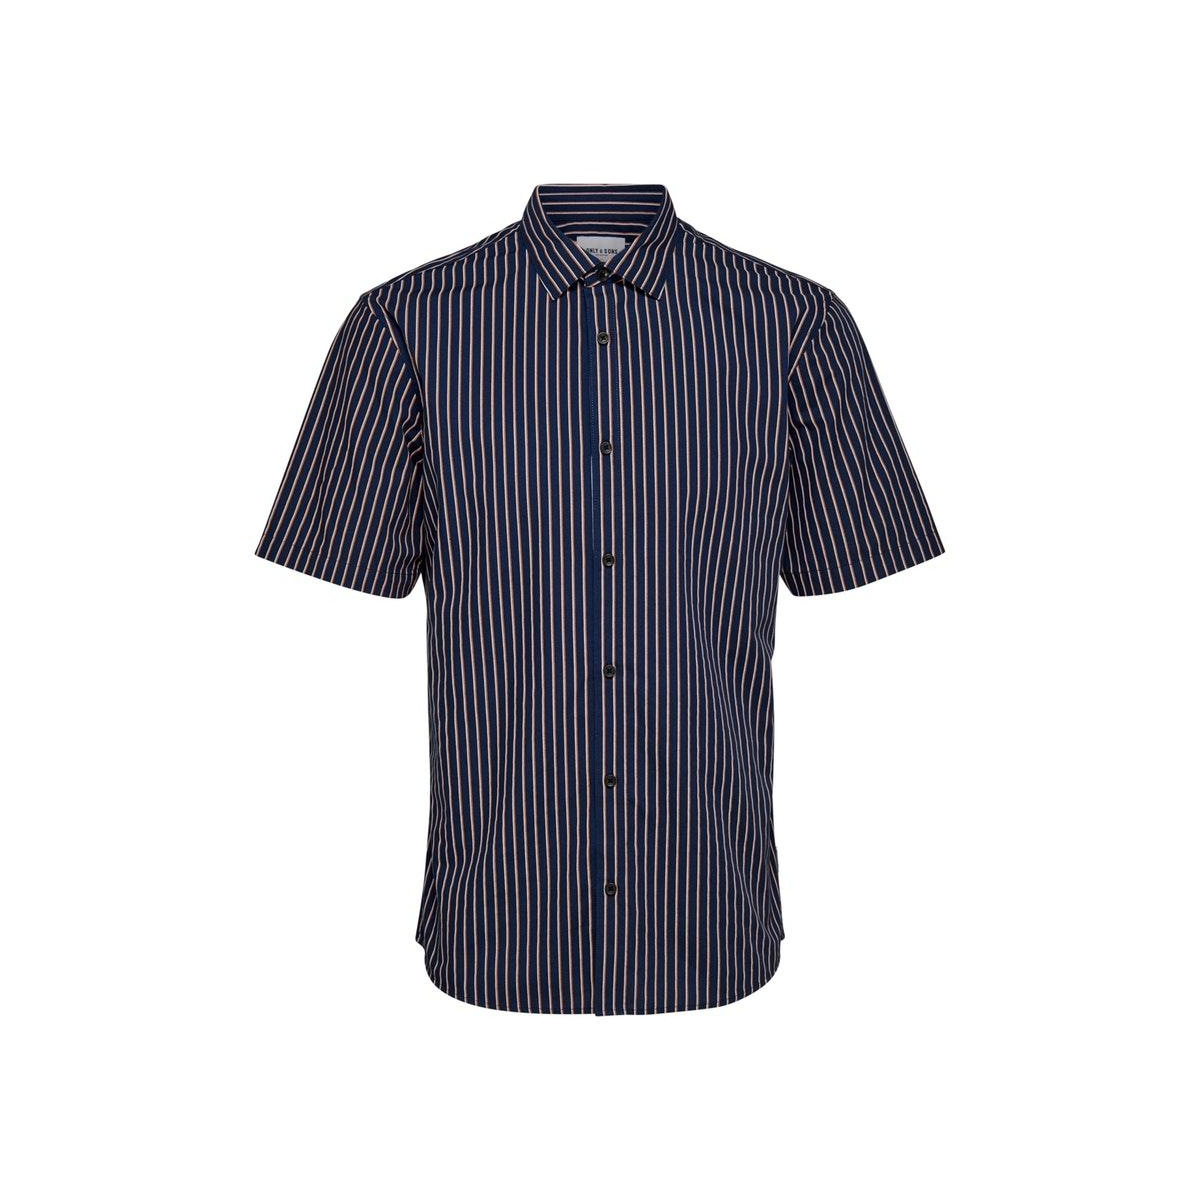 onssane ss striped poplin shirt 22015476 only & sons overhemd dress blues